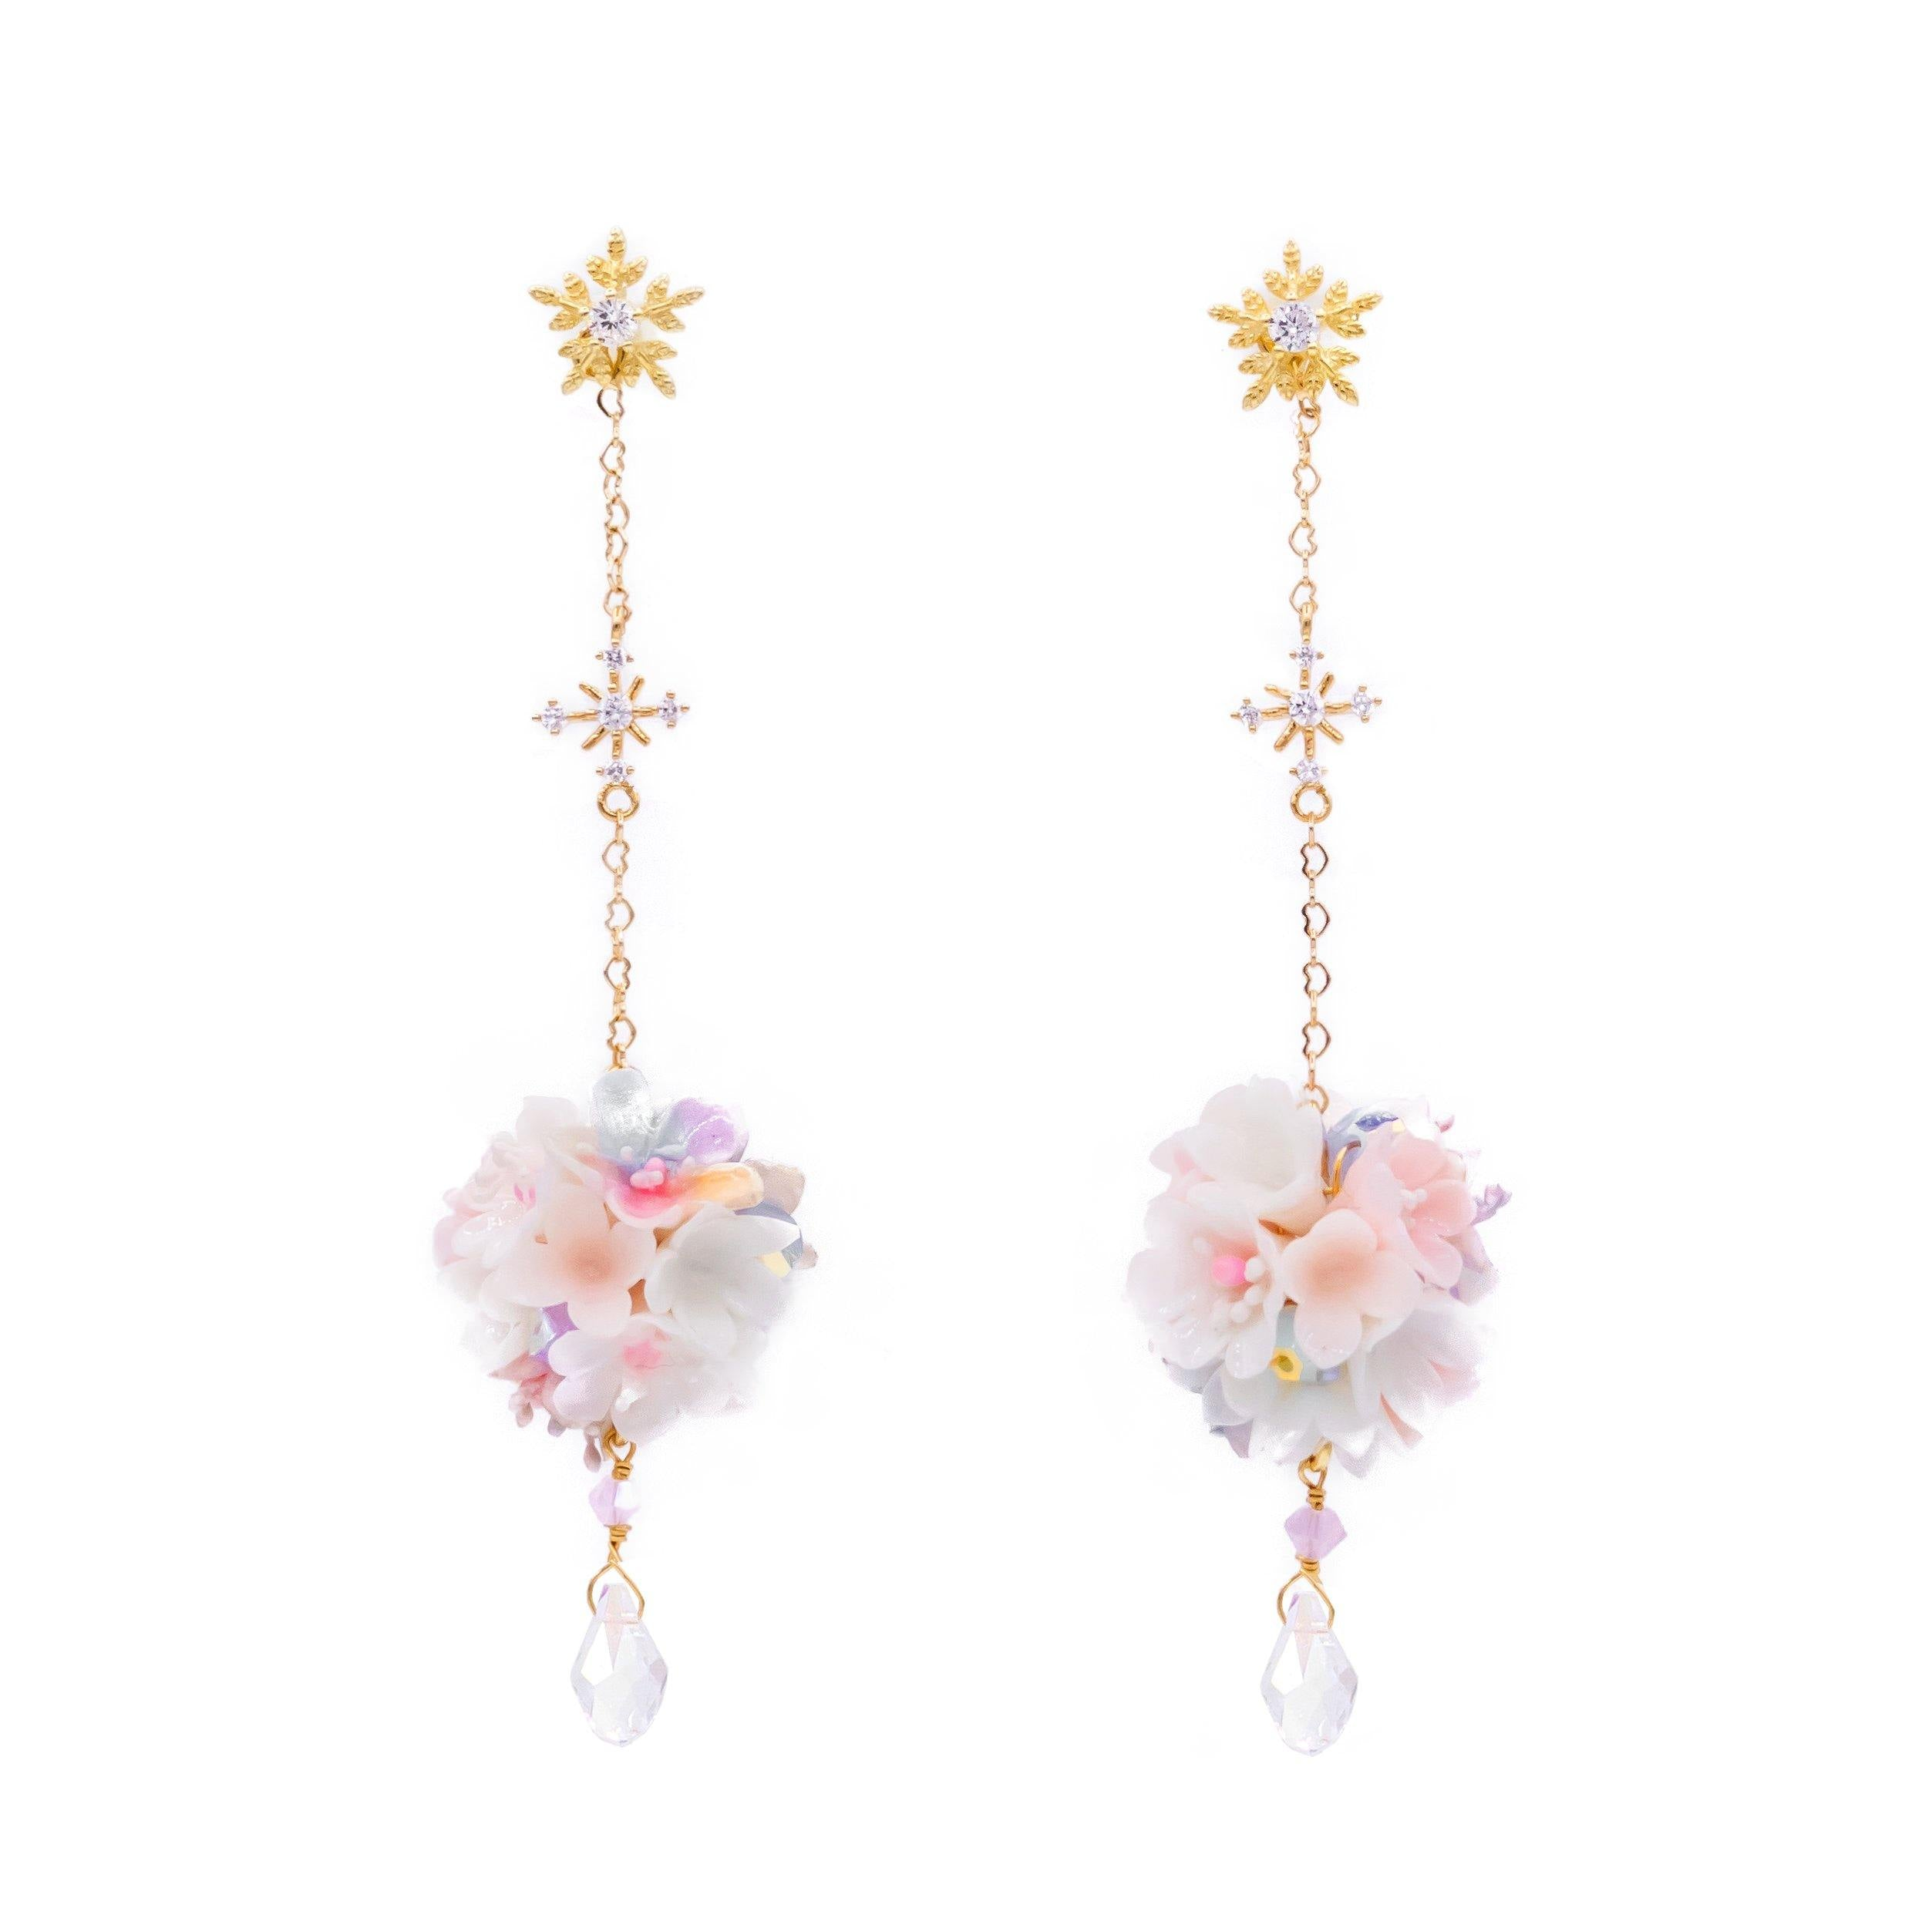 Aurora Luster Bouquet 2-way 14K Gold-plated Silver Earrings